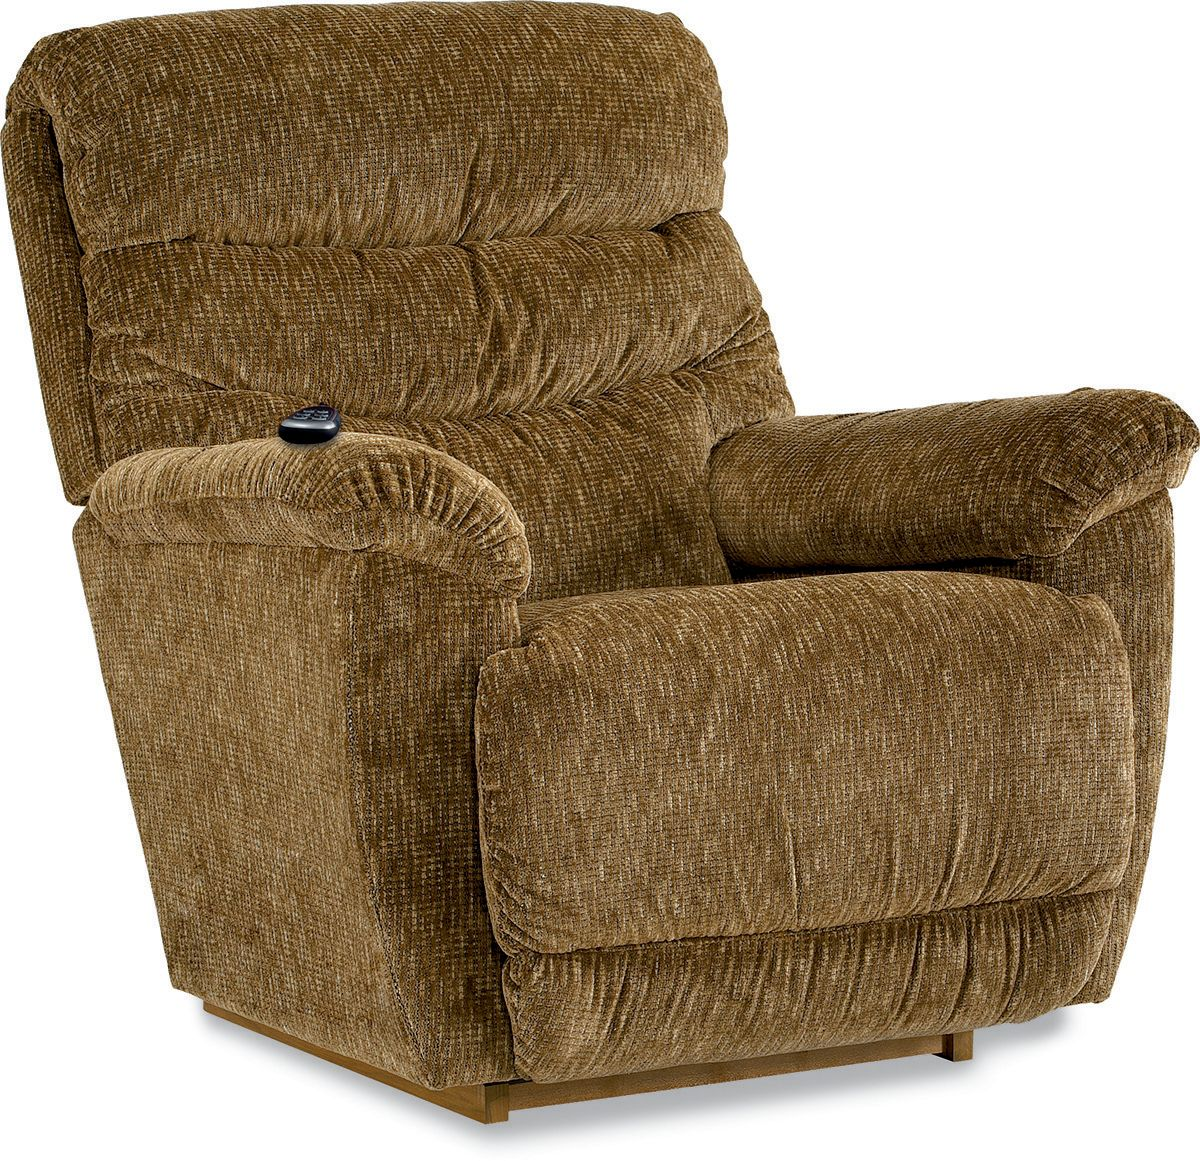 La-Z-Boy COLLINS POWER RECLINER - TRUFFLE COLOR